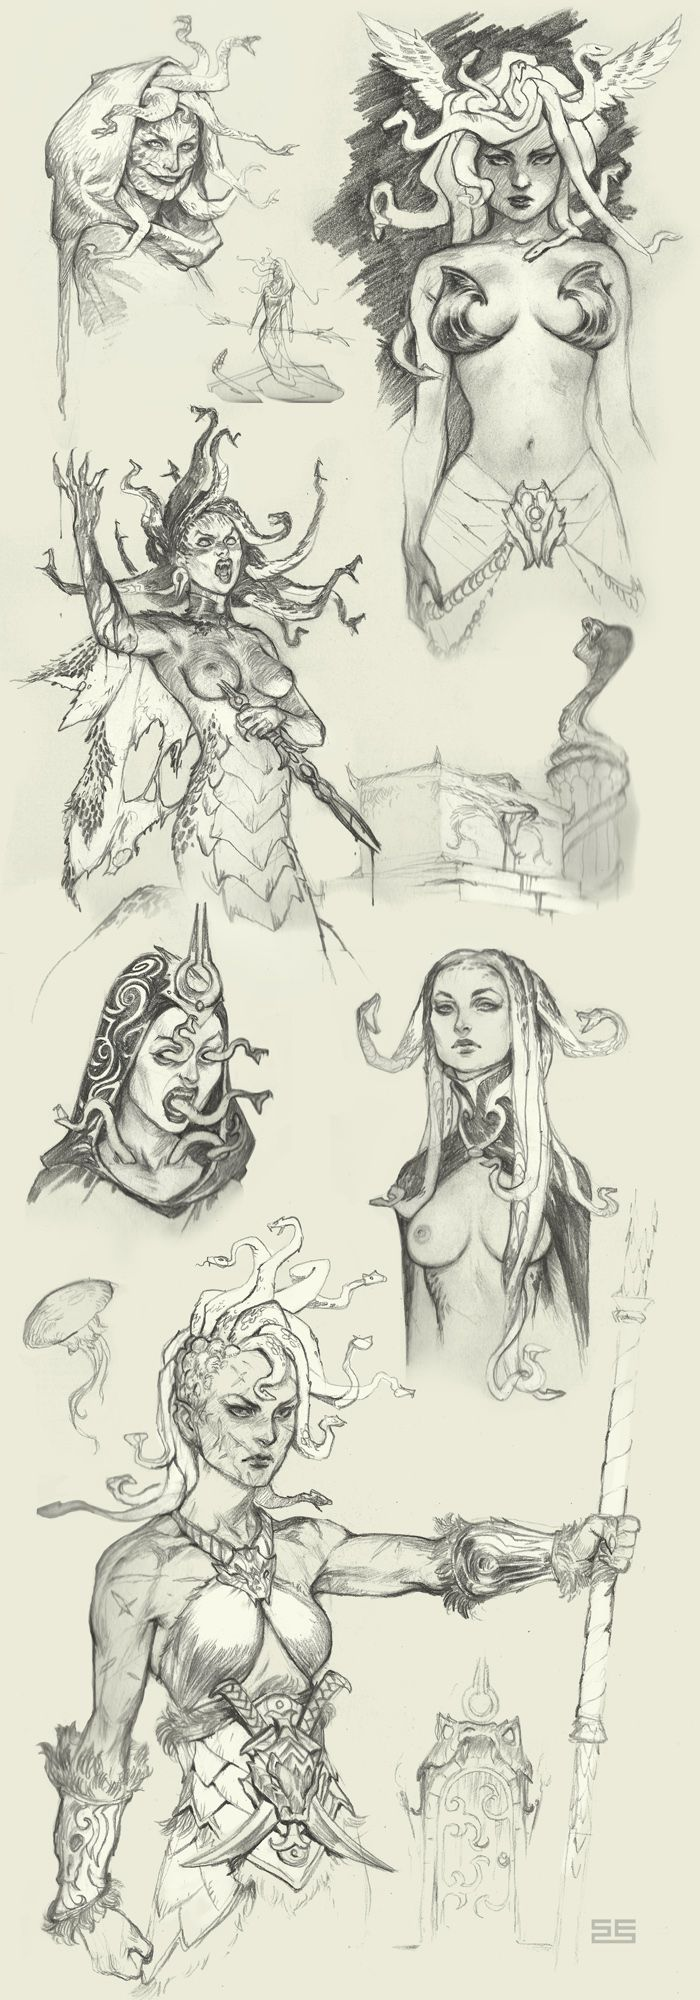 Medusa sketches by Scebiqu.deviantart.com on @DeviantArt